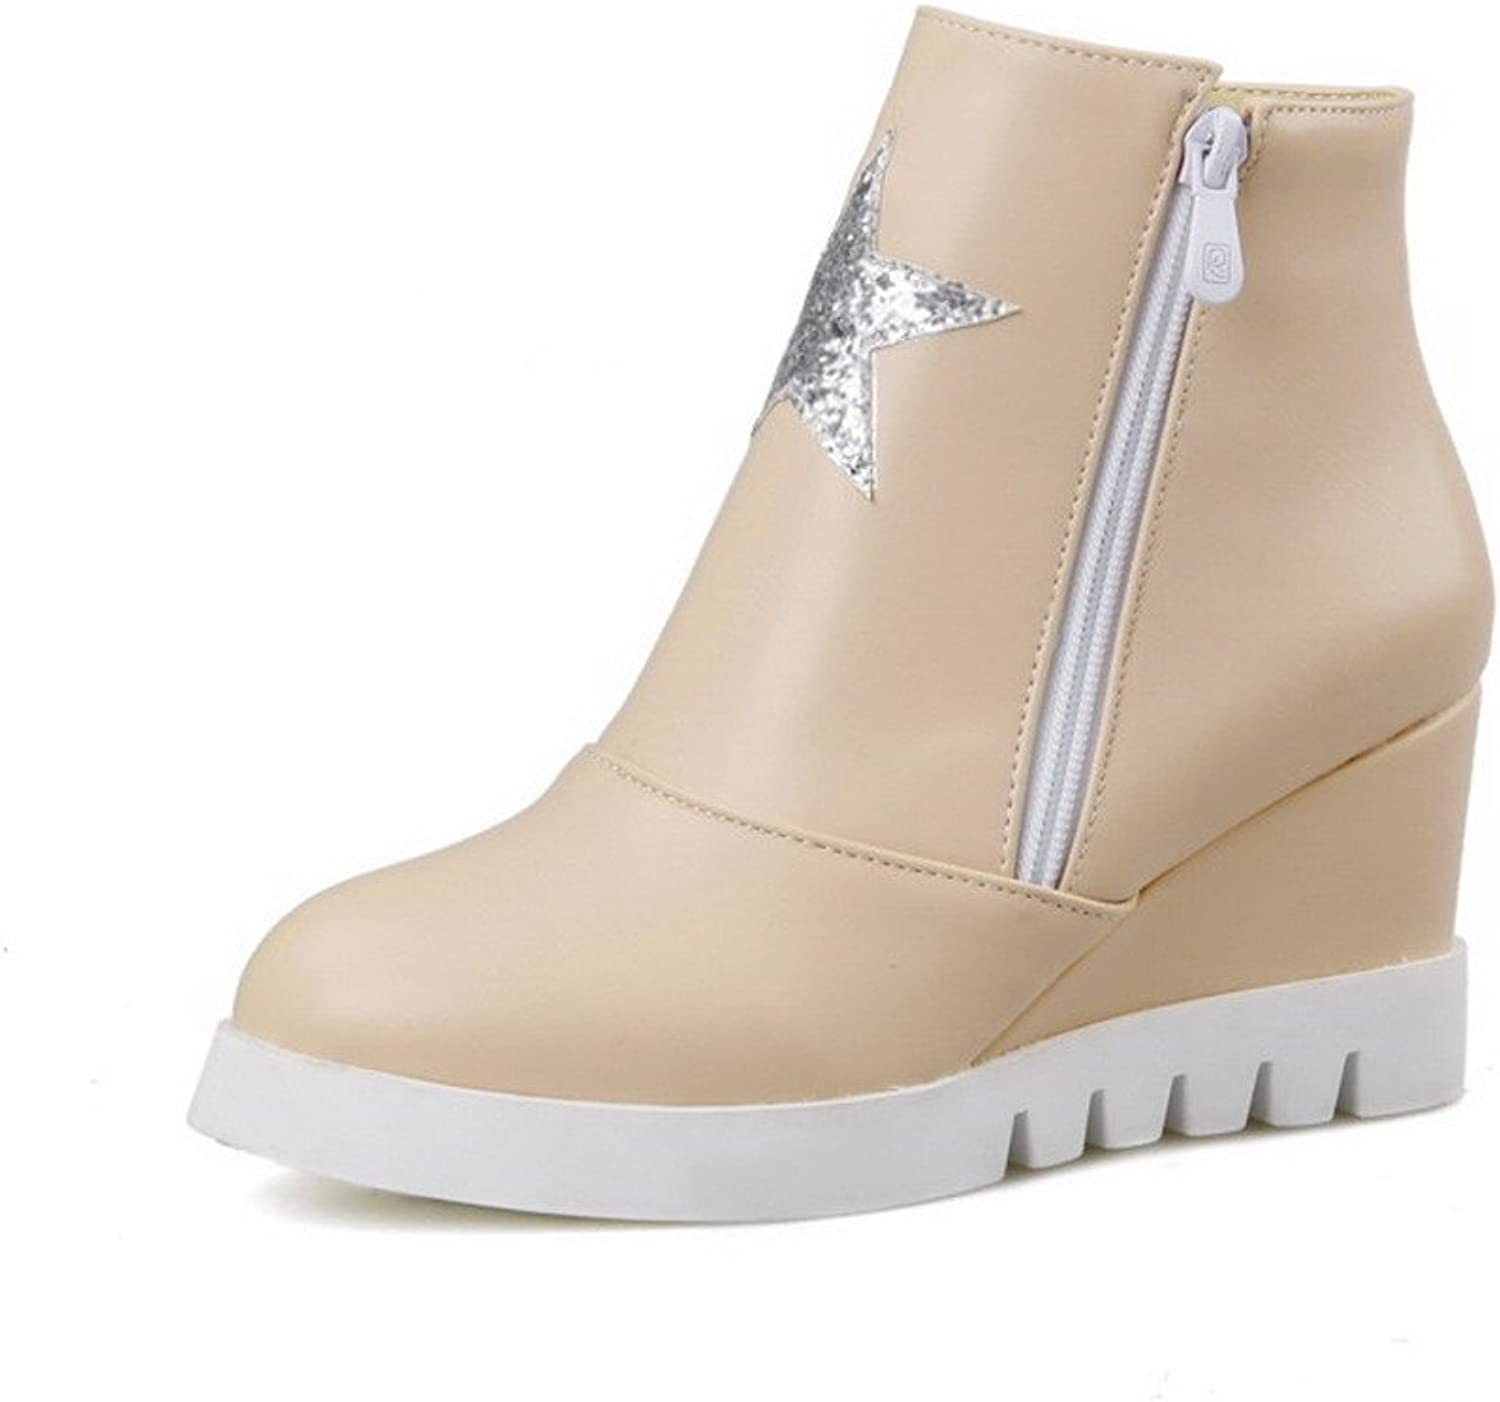 WeenFashion Women's Low-top Solid Zipper Round Closed Toe High-Heels Boots